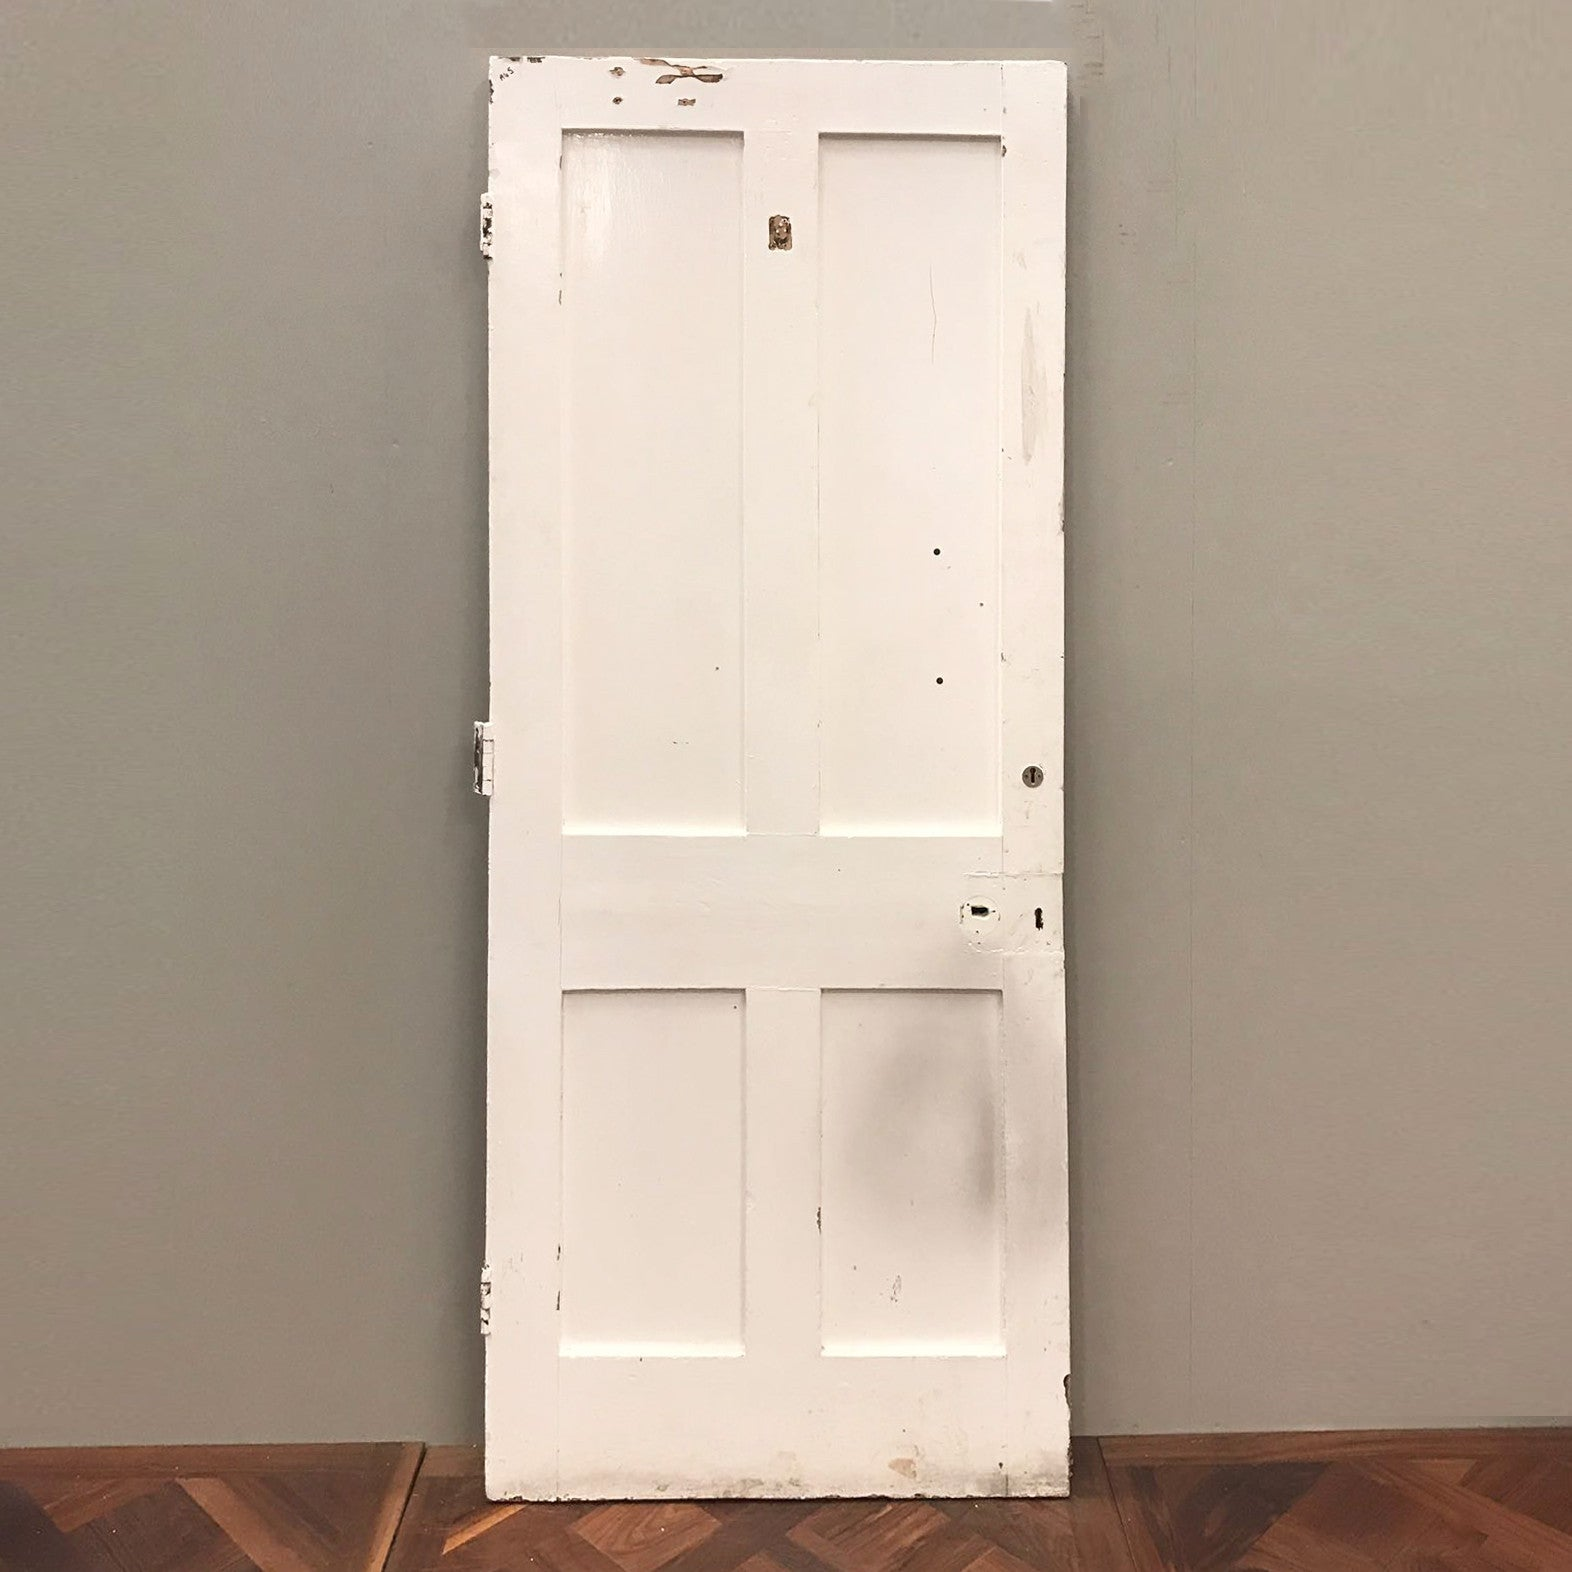 Reclaimed Victorian Four Panel Door - 205cm x 84.5cm x 5cm - architectural-forum